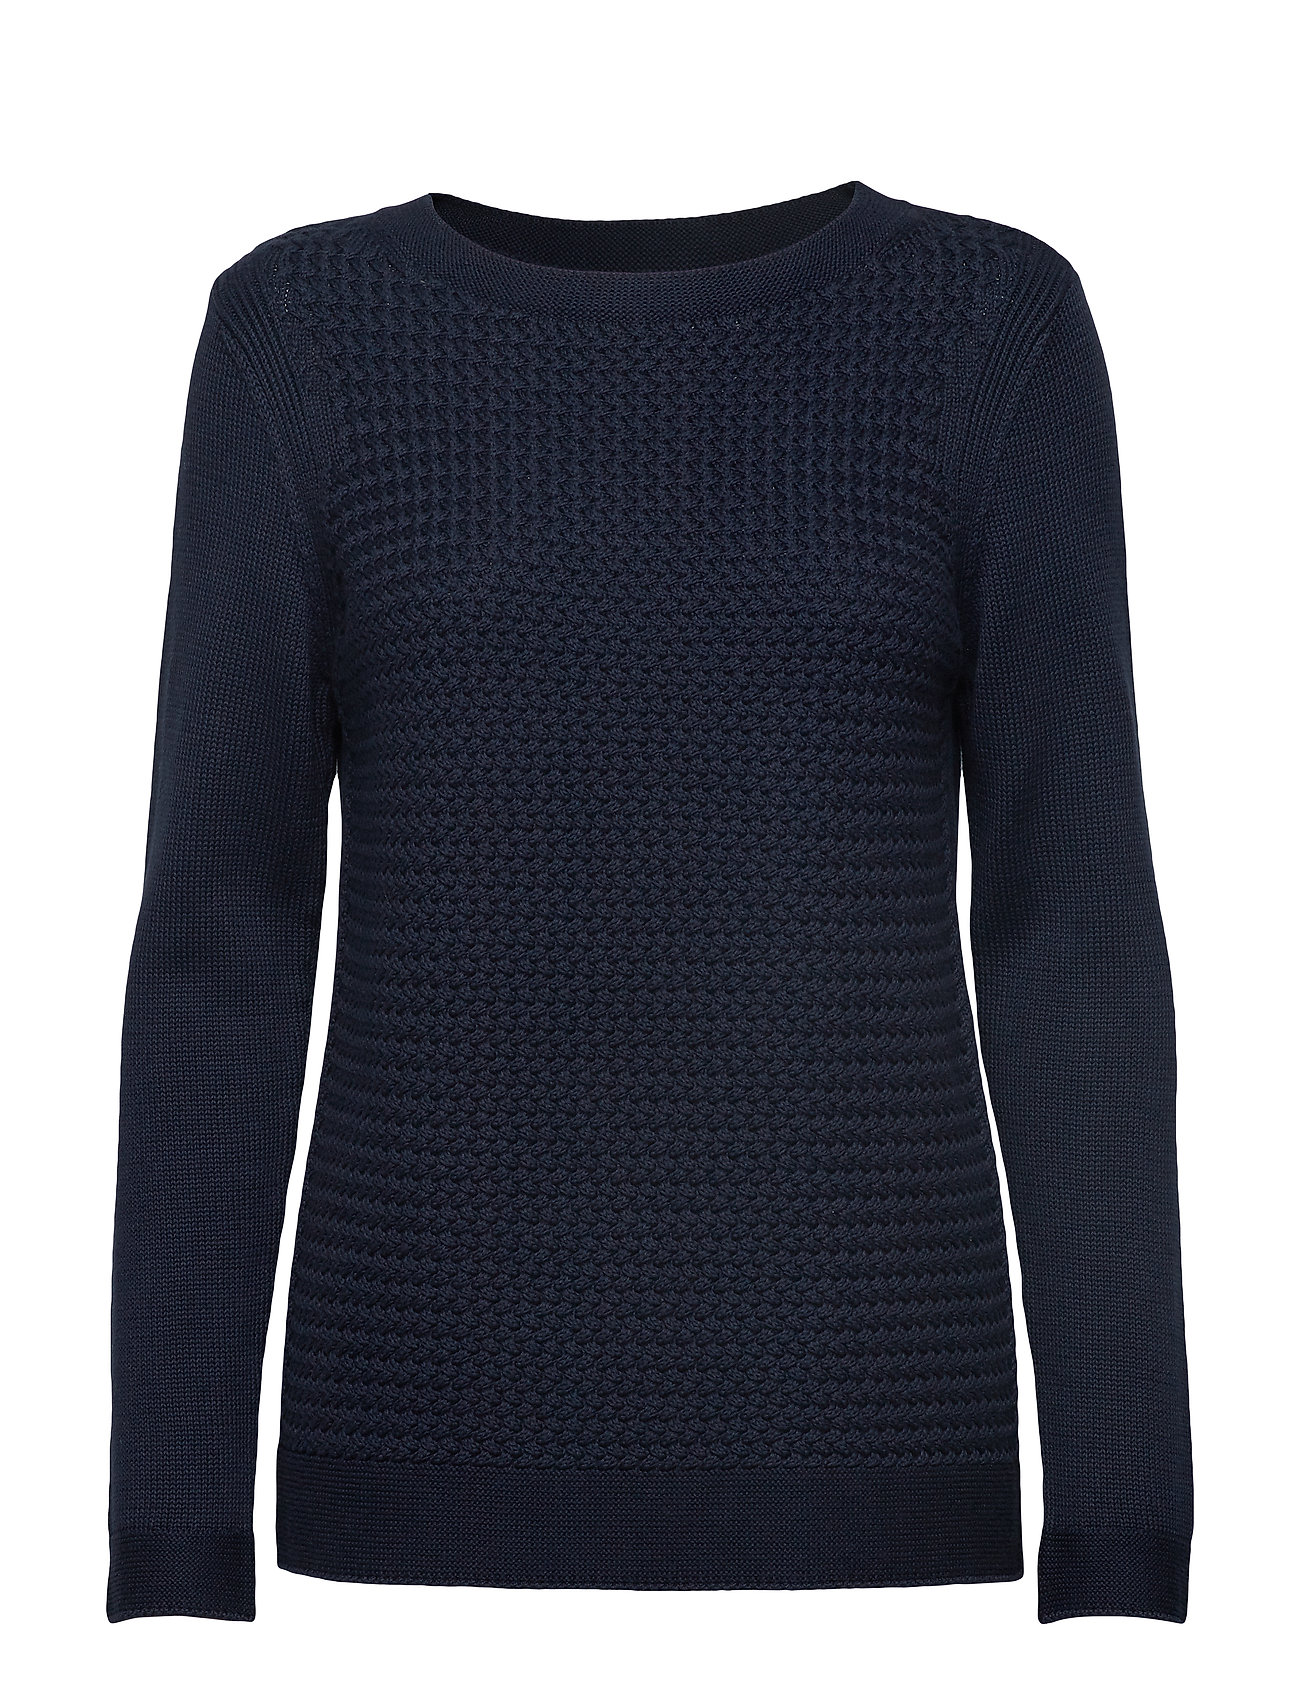 Barbour Barbour Shoreline Knit - NAVY